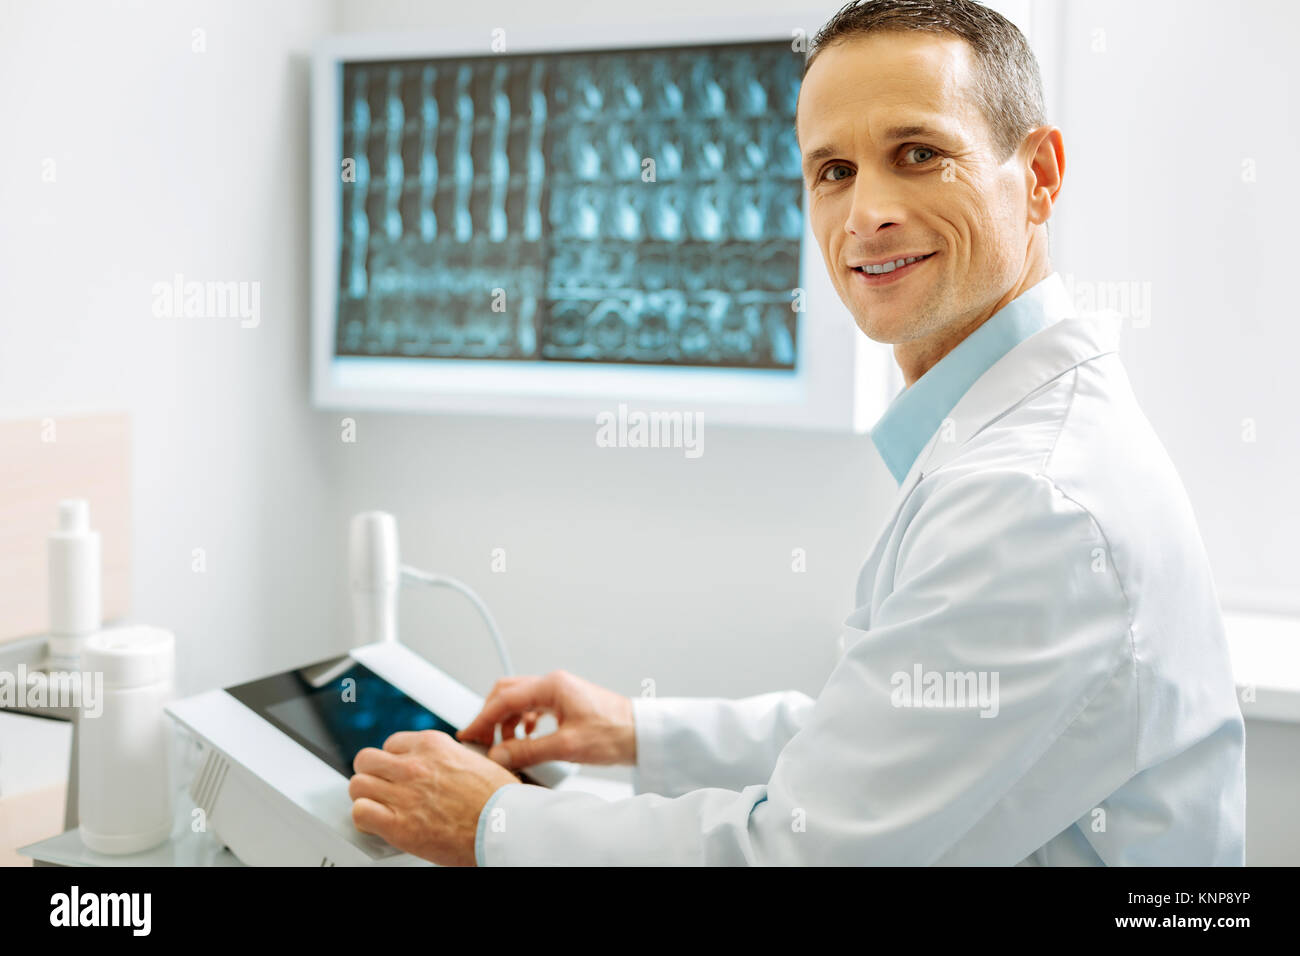 Experienced smart radiologist looking at you - Stock Image